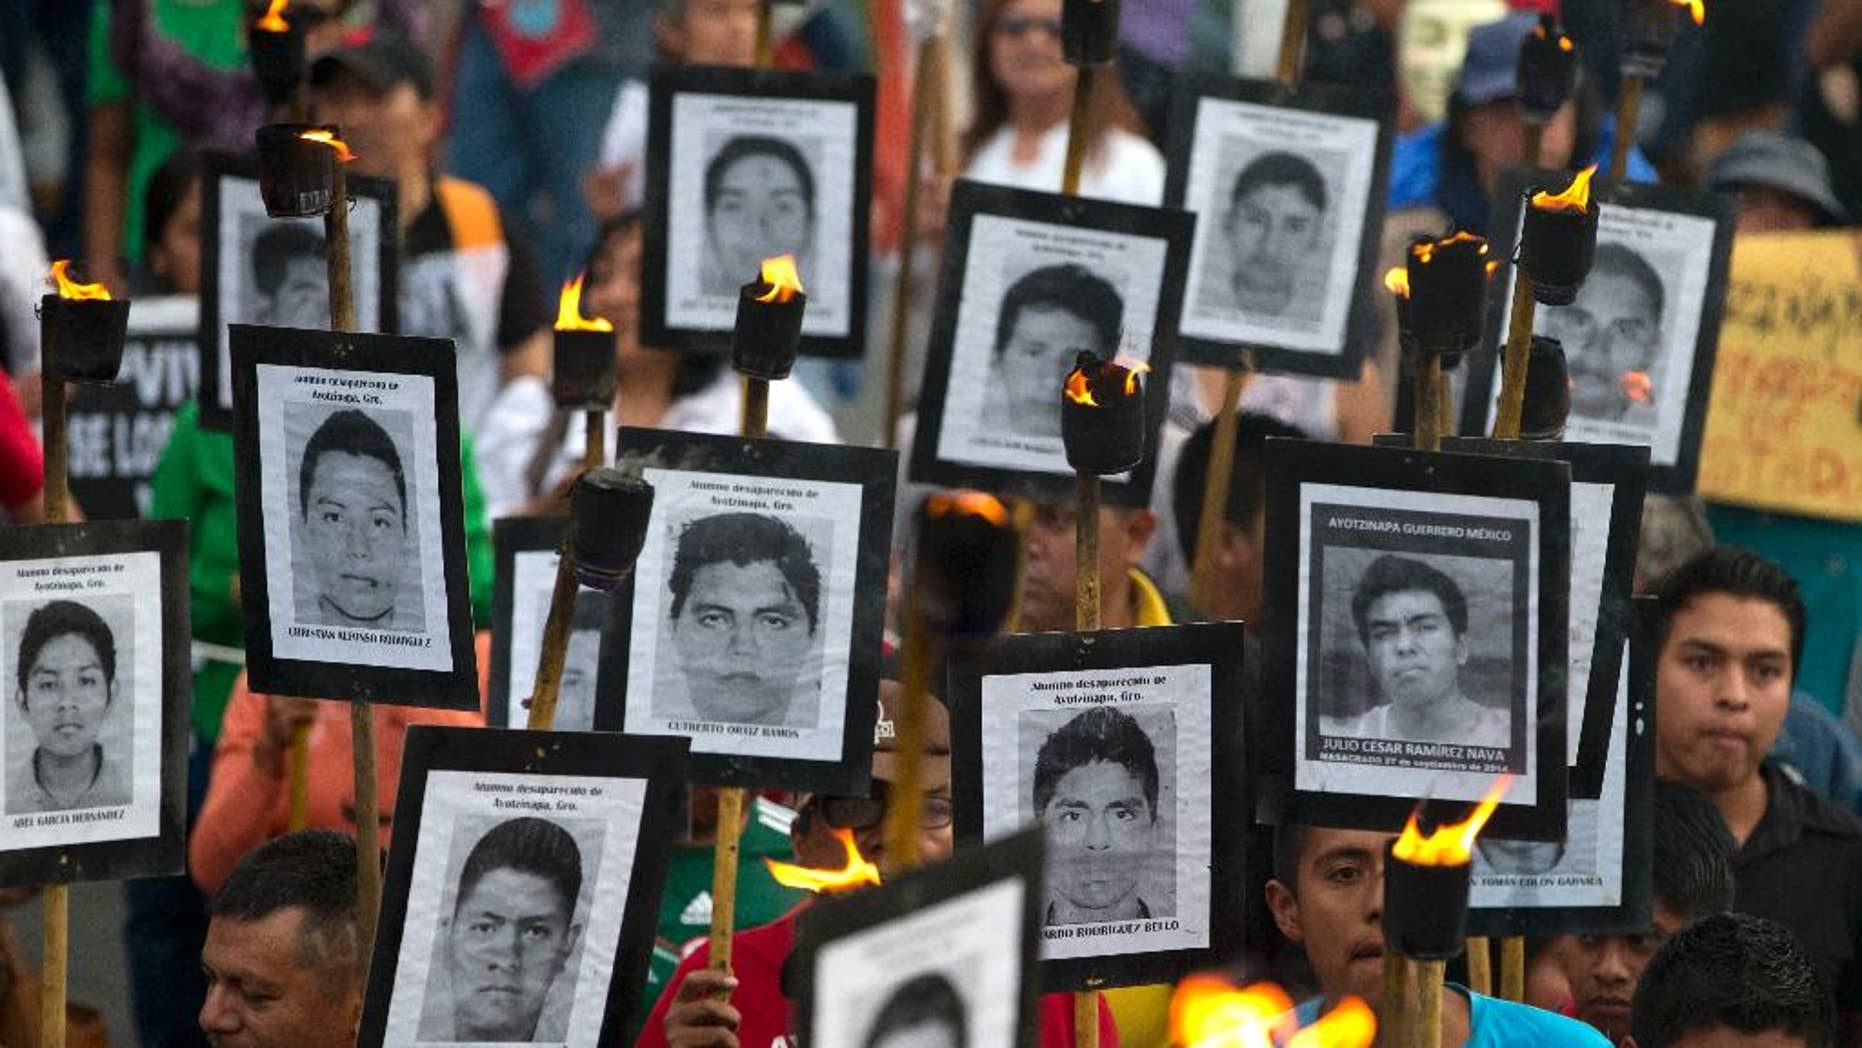 Family members of 43 missing teachers college students carry pictures of the students as they march with supporters to demand the case not be closed and that experts' recommendations about new leads be followed, in Mexico City, Tuesday, April 26, 2016. The U.N. Office of the High Commissioner for Human Rights said Tuesday that it is troubled by a group of international experts' complaints of obstacles to their investigation into Sept. 26, 2014 disappearance of the students in southern Guerrero State.(AP Photo/Rebecca Blackwell)